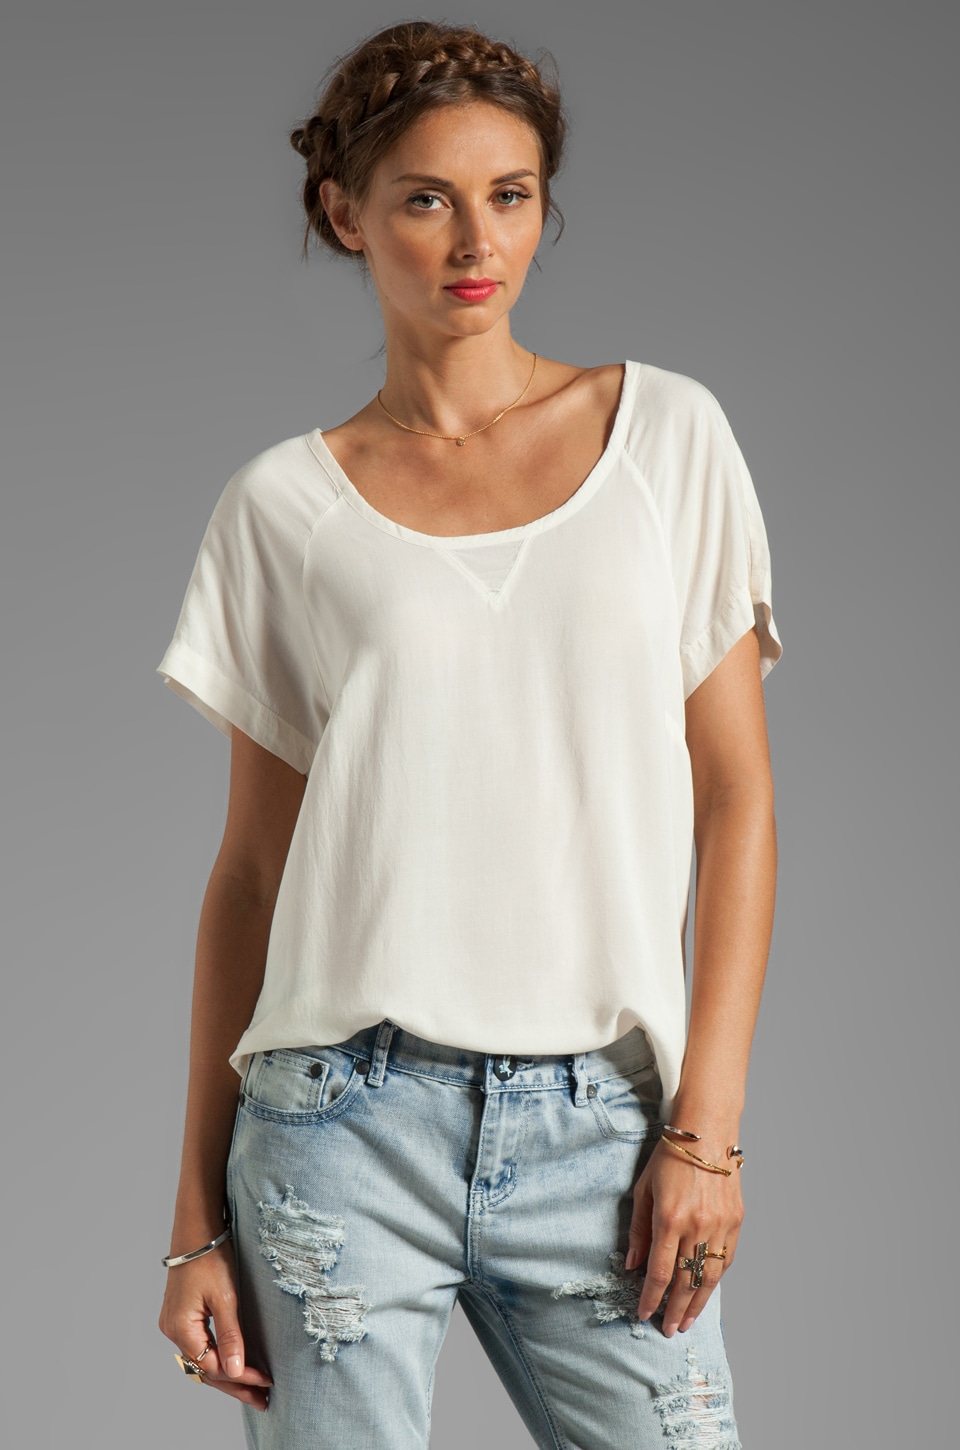 Splendid Shirting Short Sleeve Top in Sand Dollar